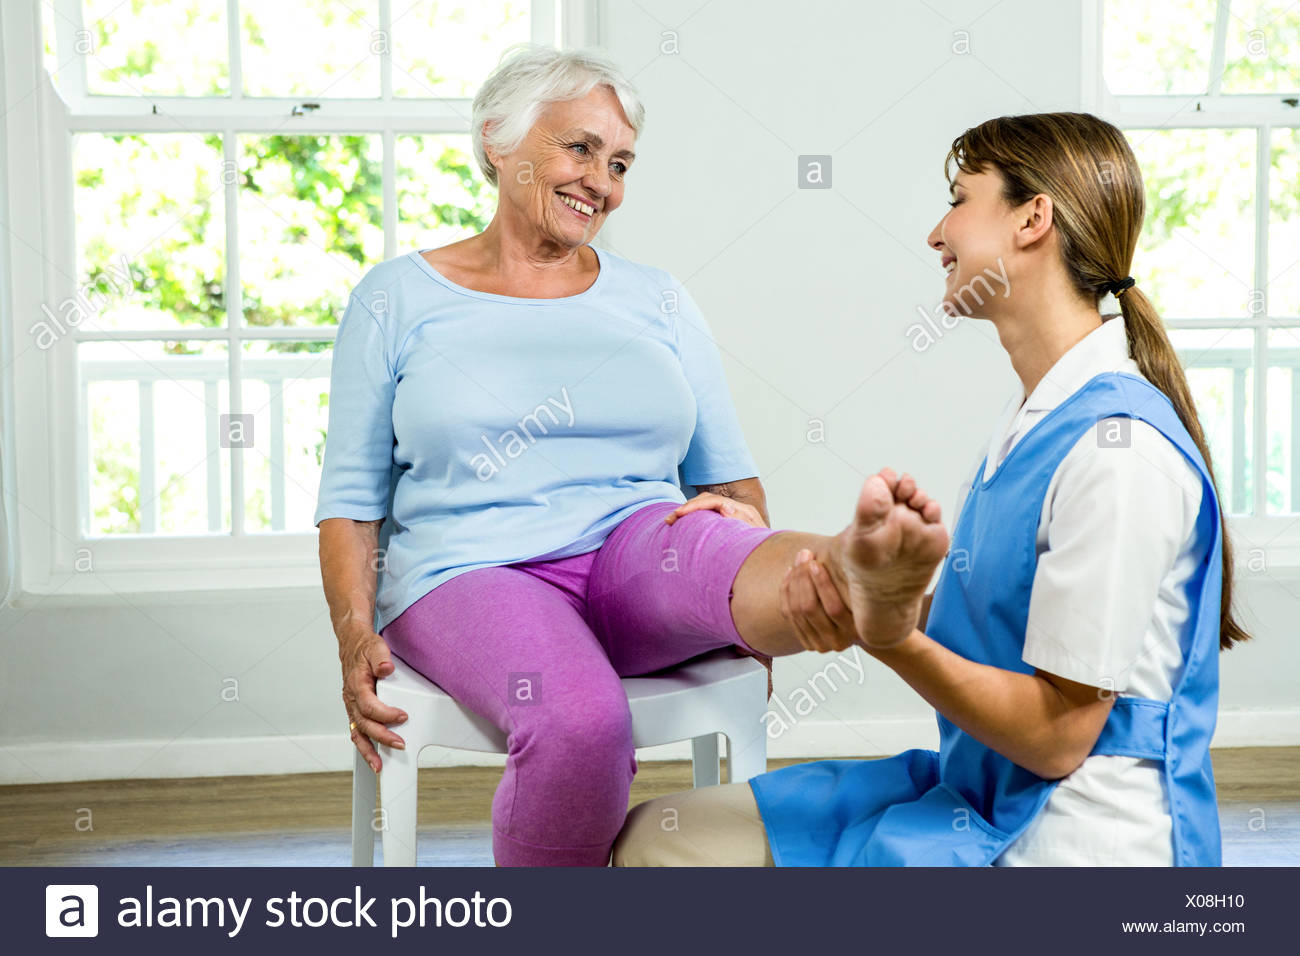 Happy nurse assisting aged woman - Stock Image